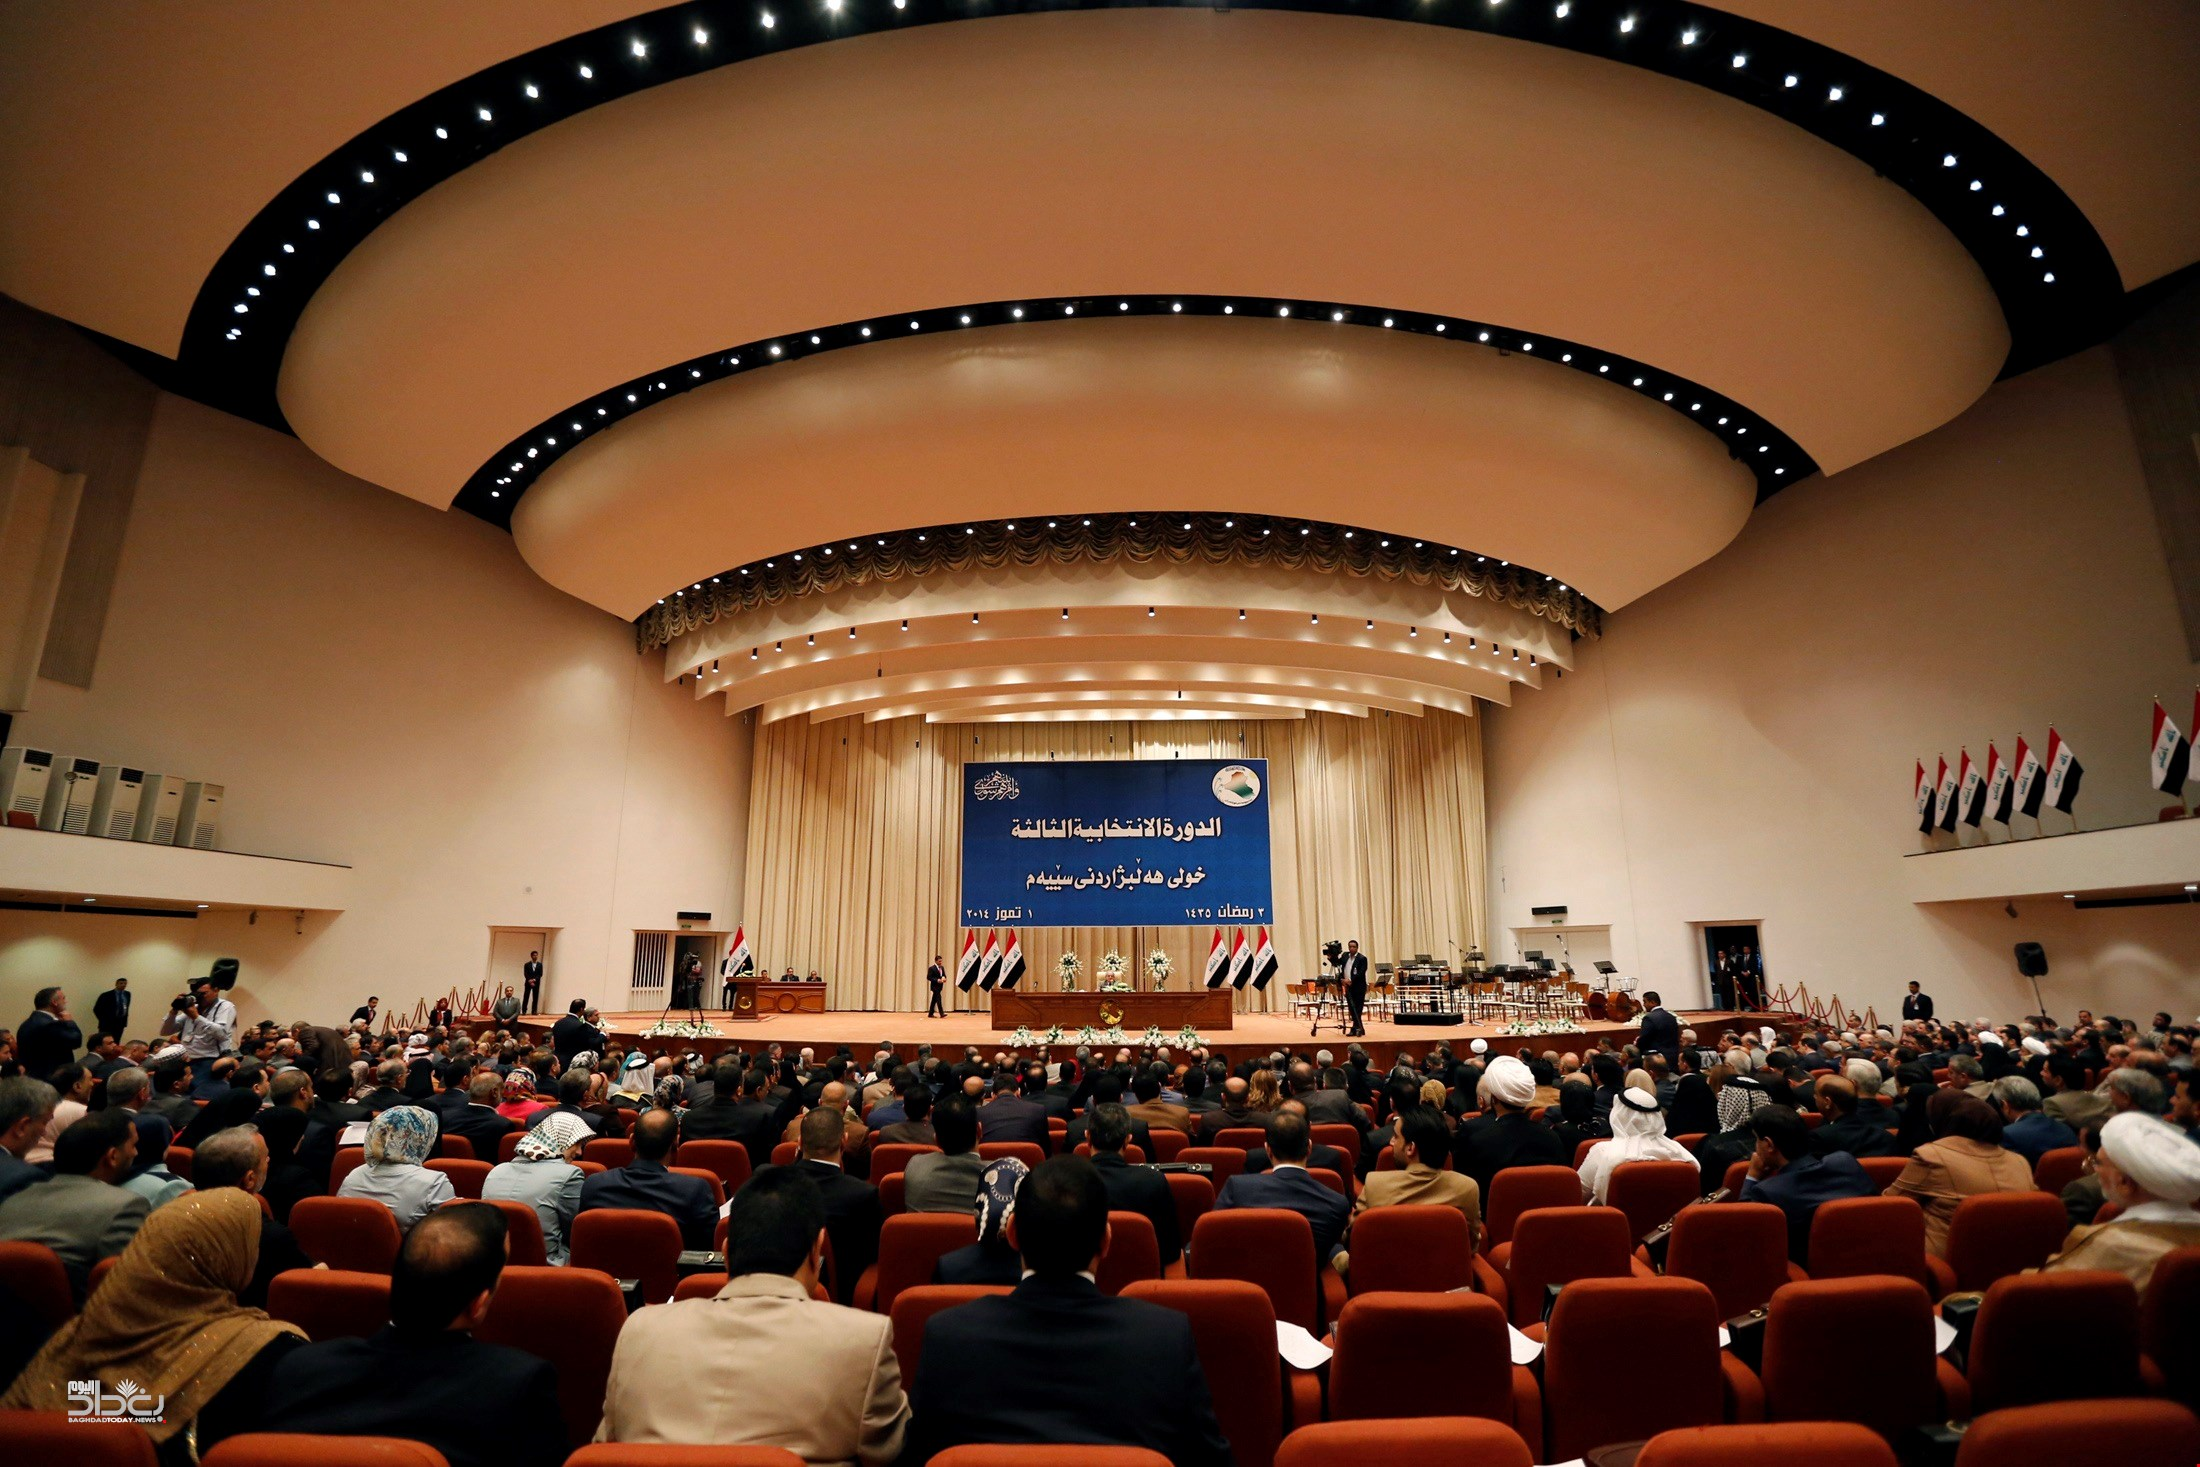 Baghdad today publishes the text of the resolution voted by Parliament on the elections